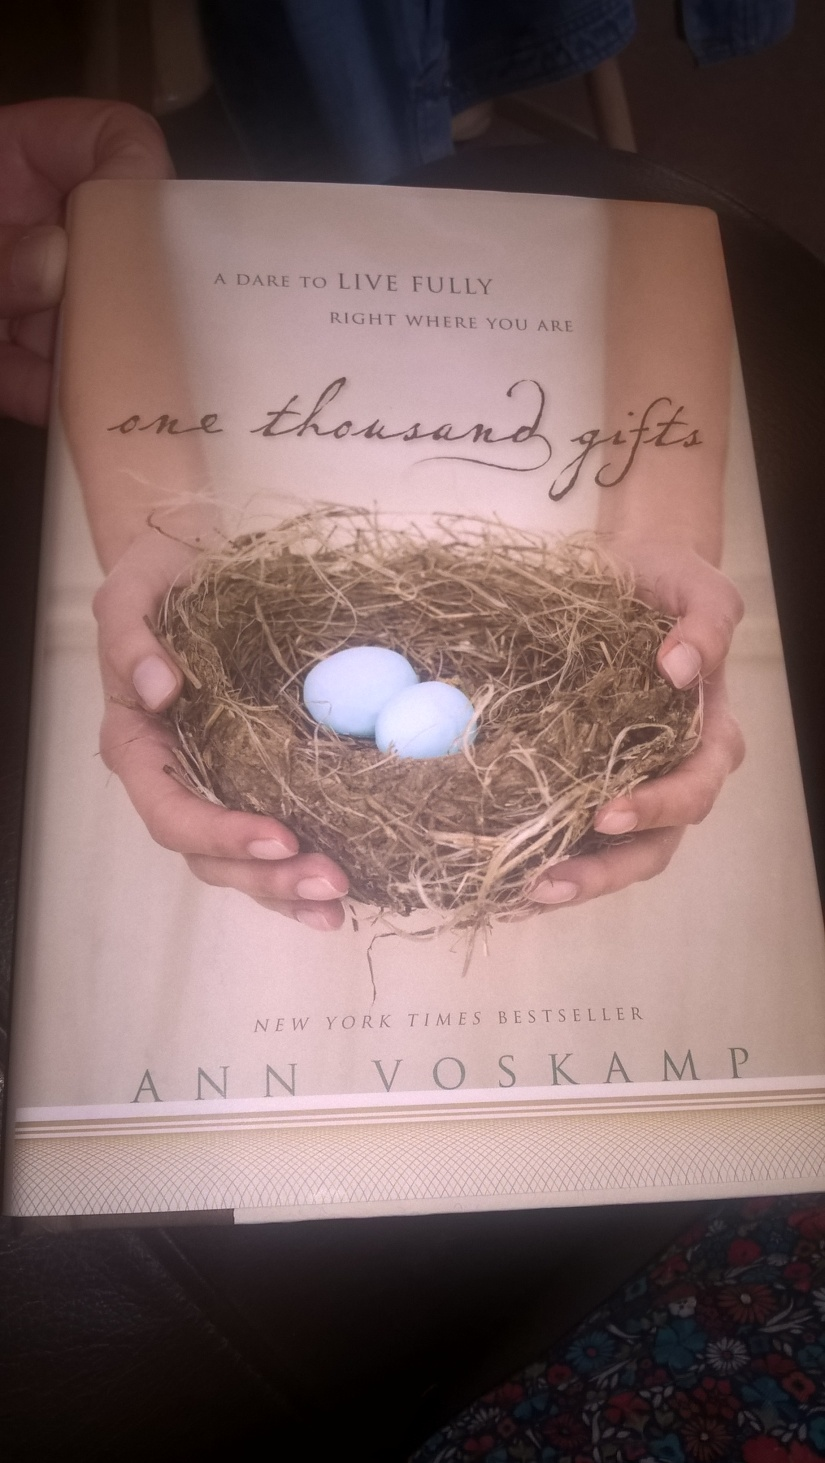 One of my favourite books. Eucharisteo - giving thanks in all things. Brilliant read by Ann Voskamp. Can you count 1000 gifts?